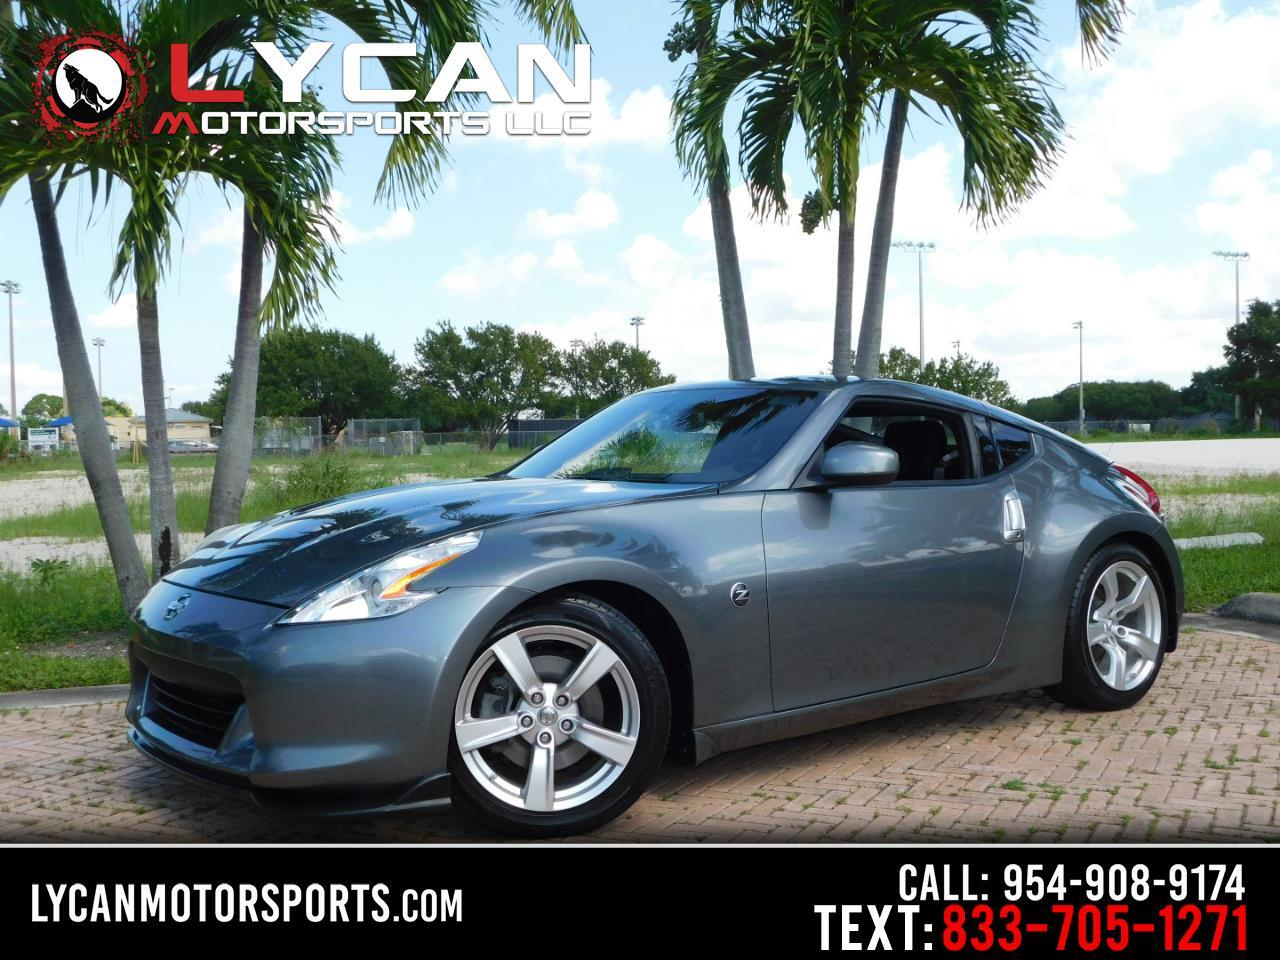 Nissan Z 370Z Touring Coupe 2012